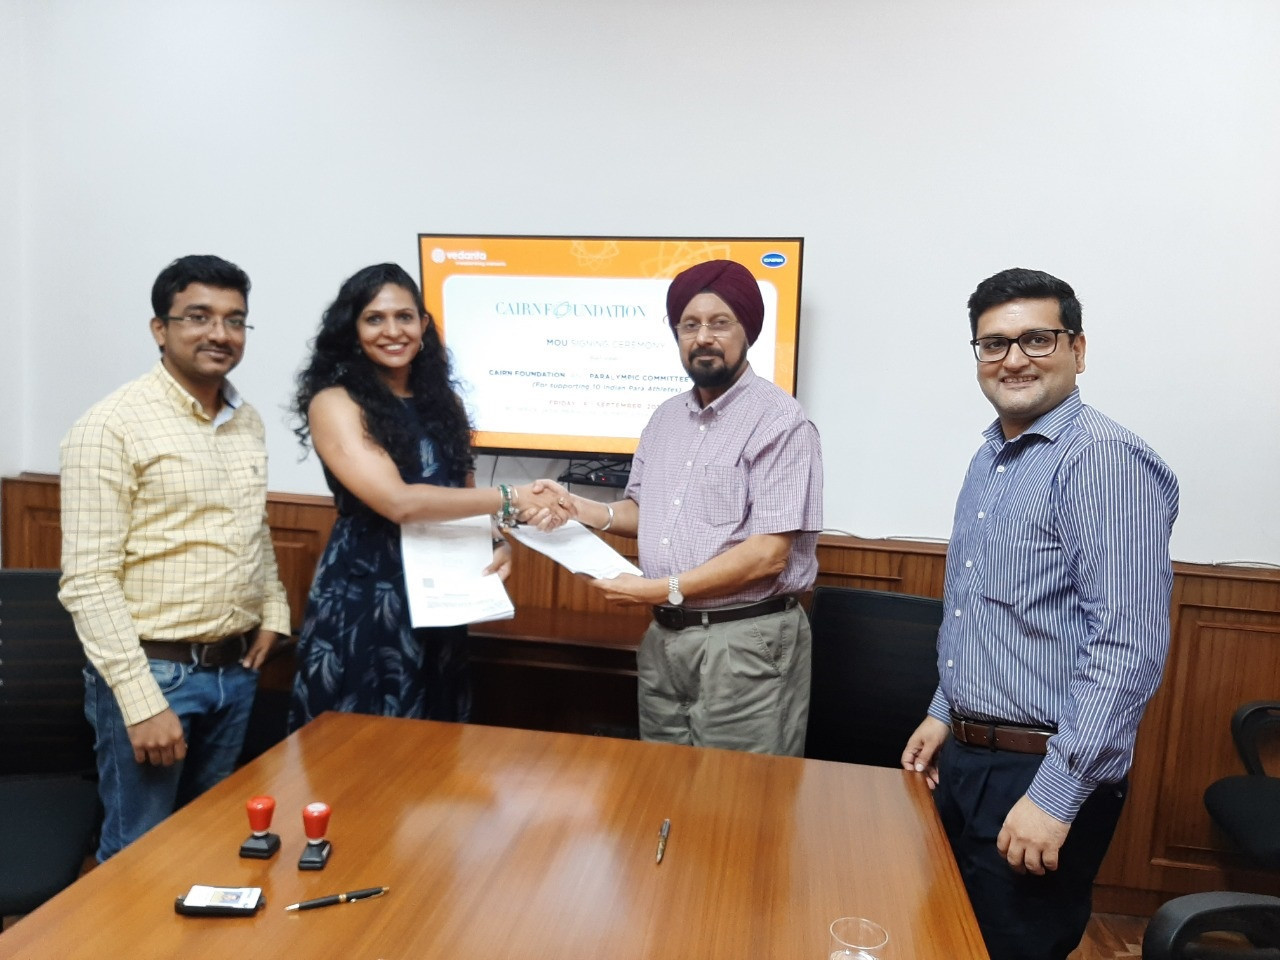 Paralympic Committee of India signs MoU with Cairn Foundation